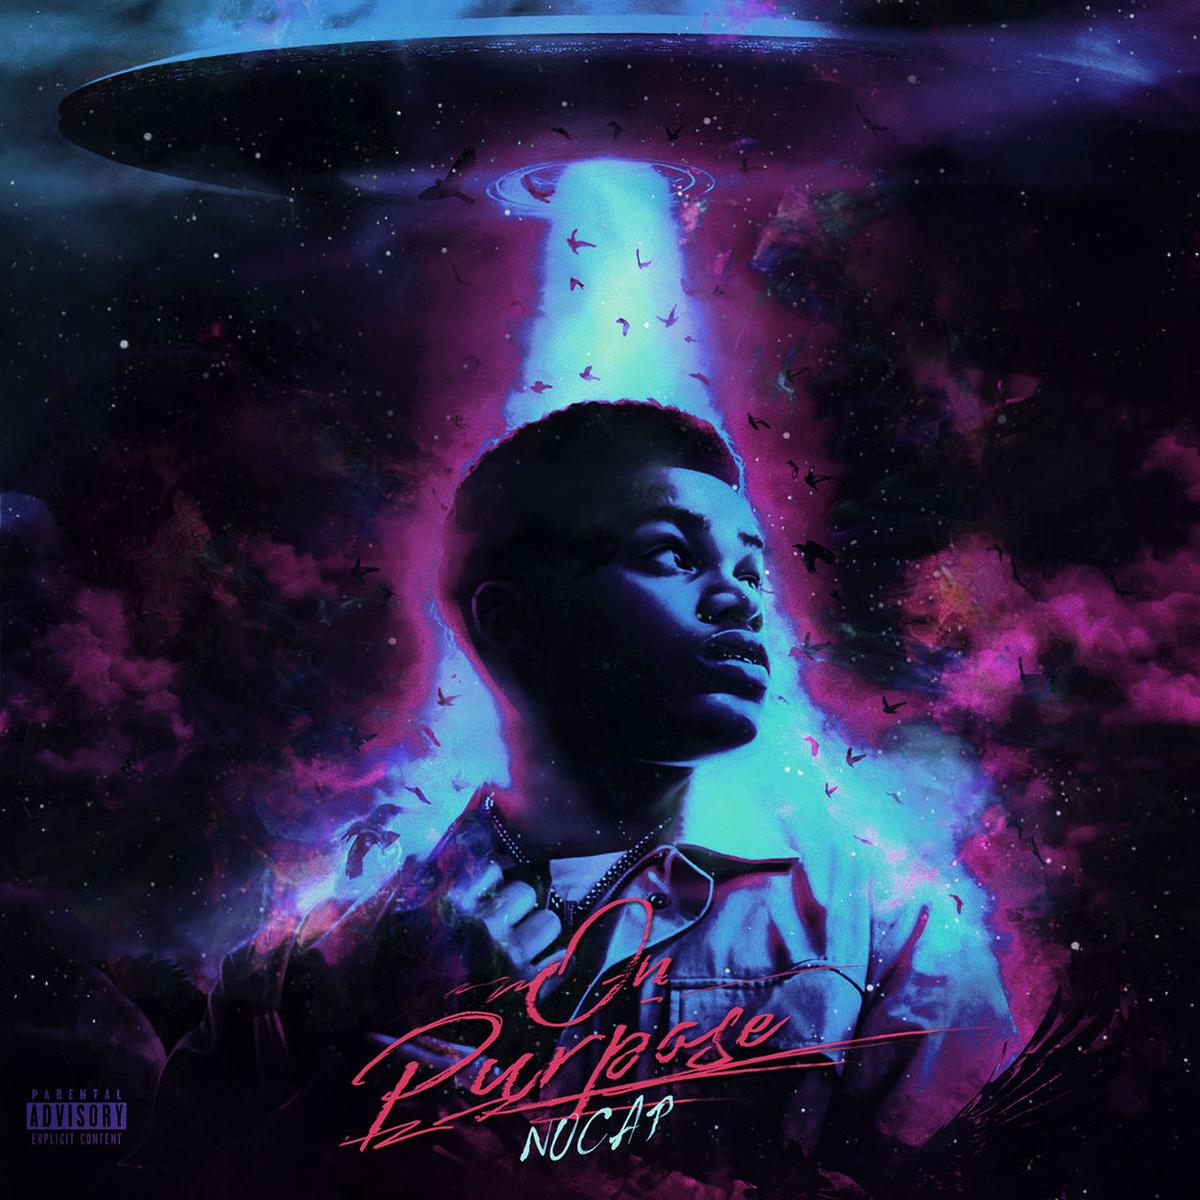 DOWNLOAD MP3: Kuttem Reese Ft. Lil Durk – No Statements